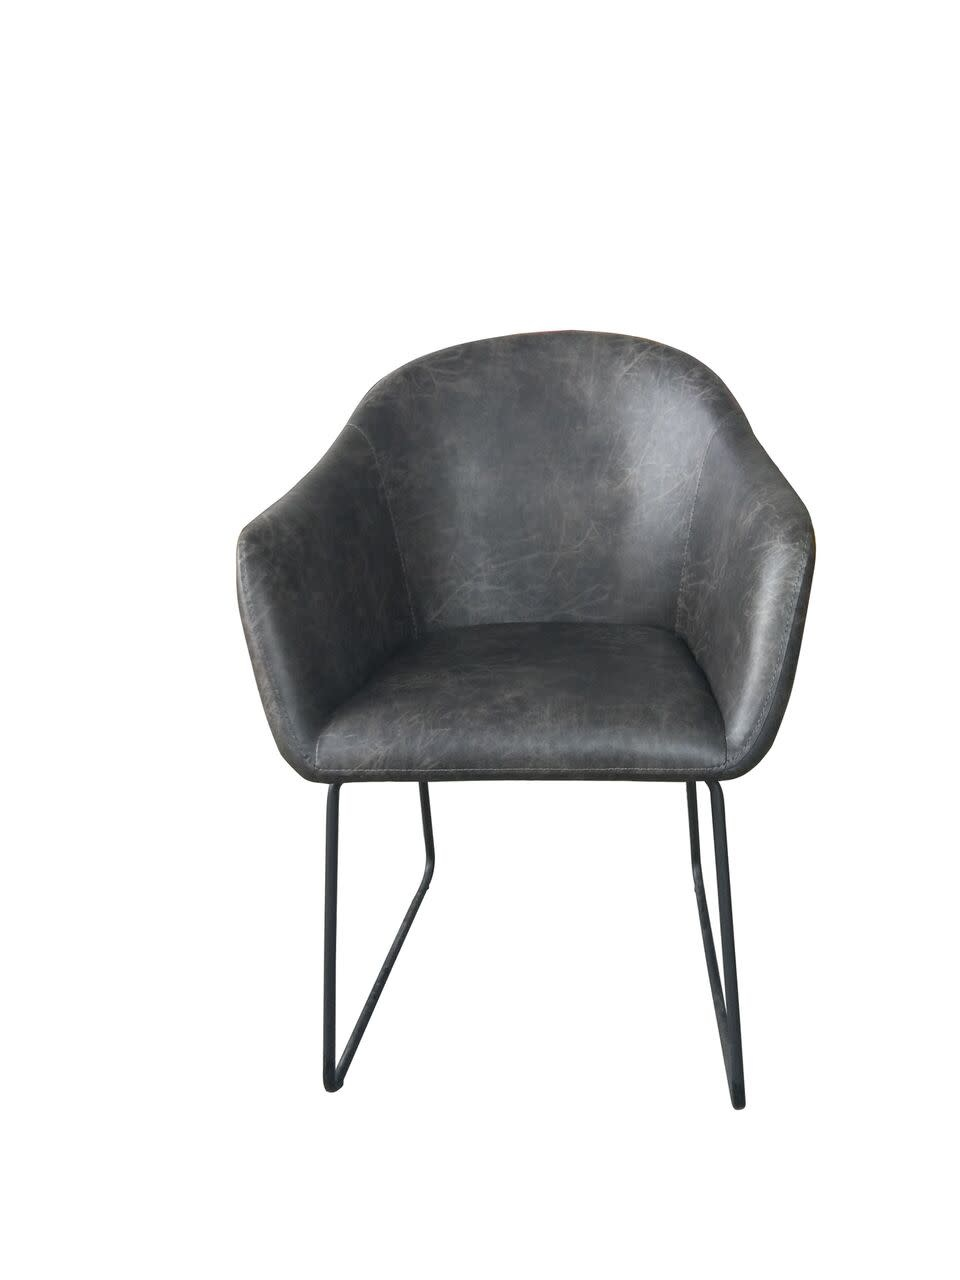 GALWAY CHAIR GRAY - disc